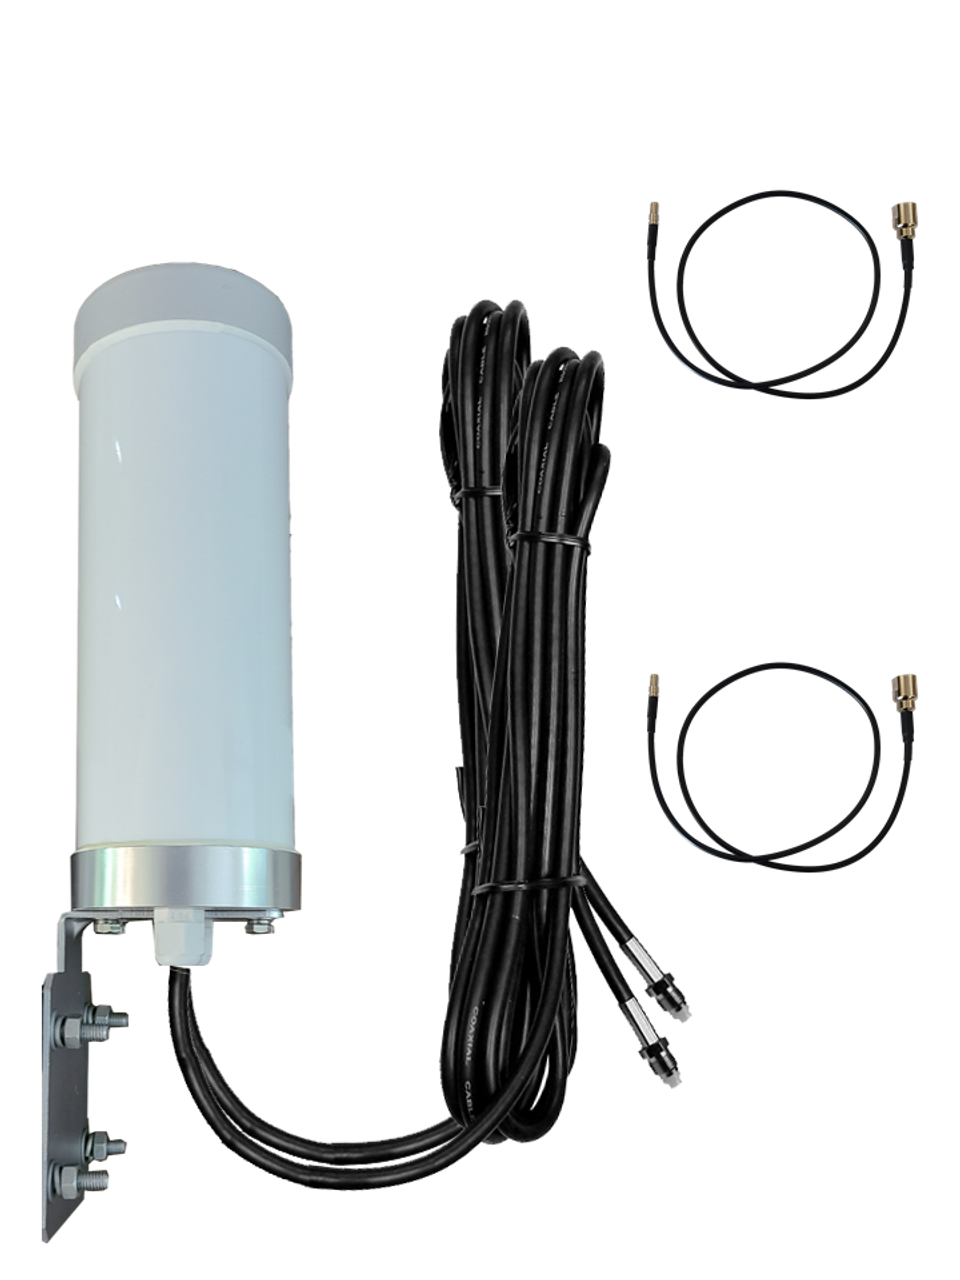 M29 Omni Directional MIMO 2 x Cellular 4G 5G LTE Antenna for NETGEAR NIGHTHAWK AX4 w/ 2 x 16ft Cables